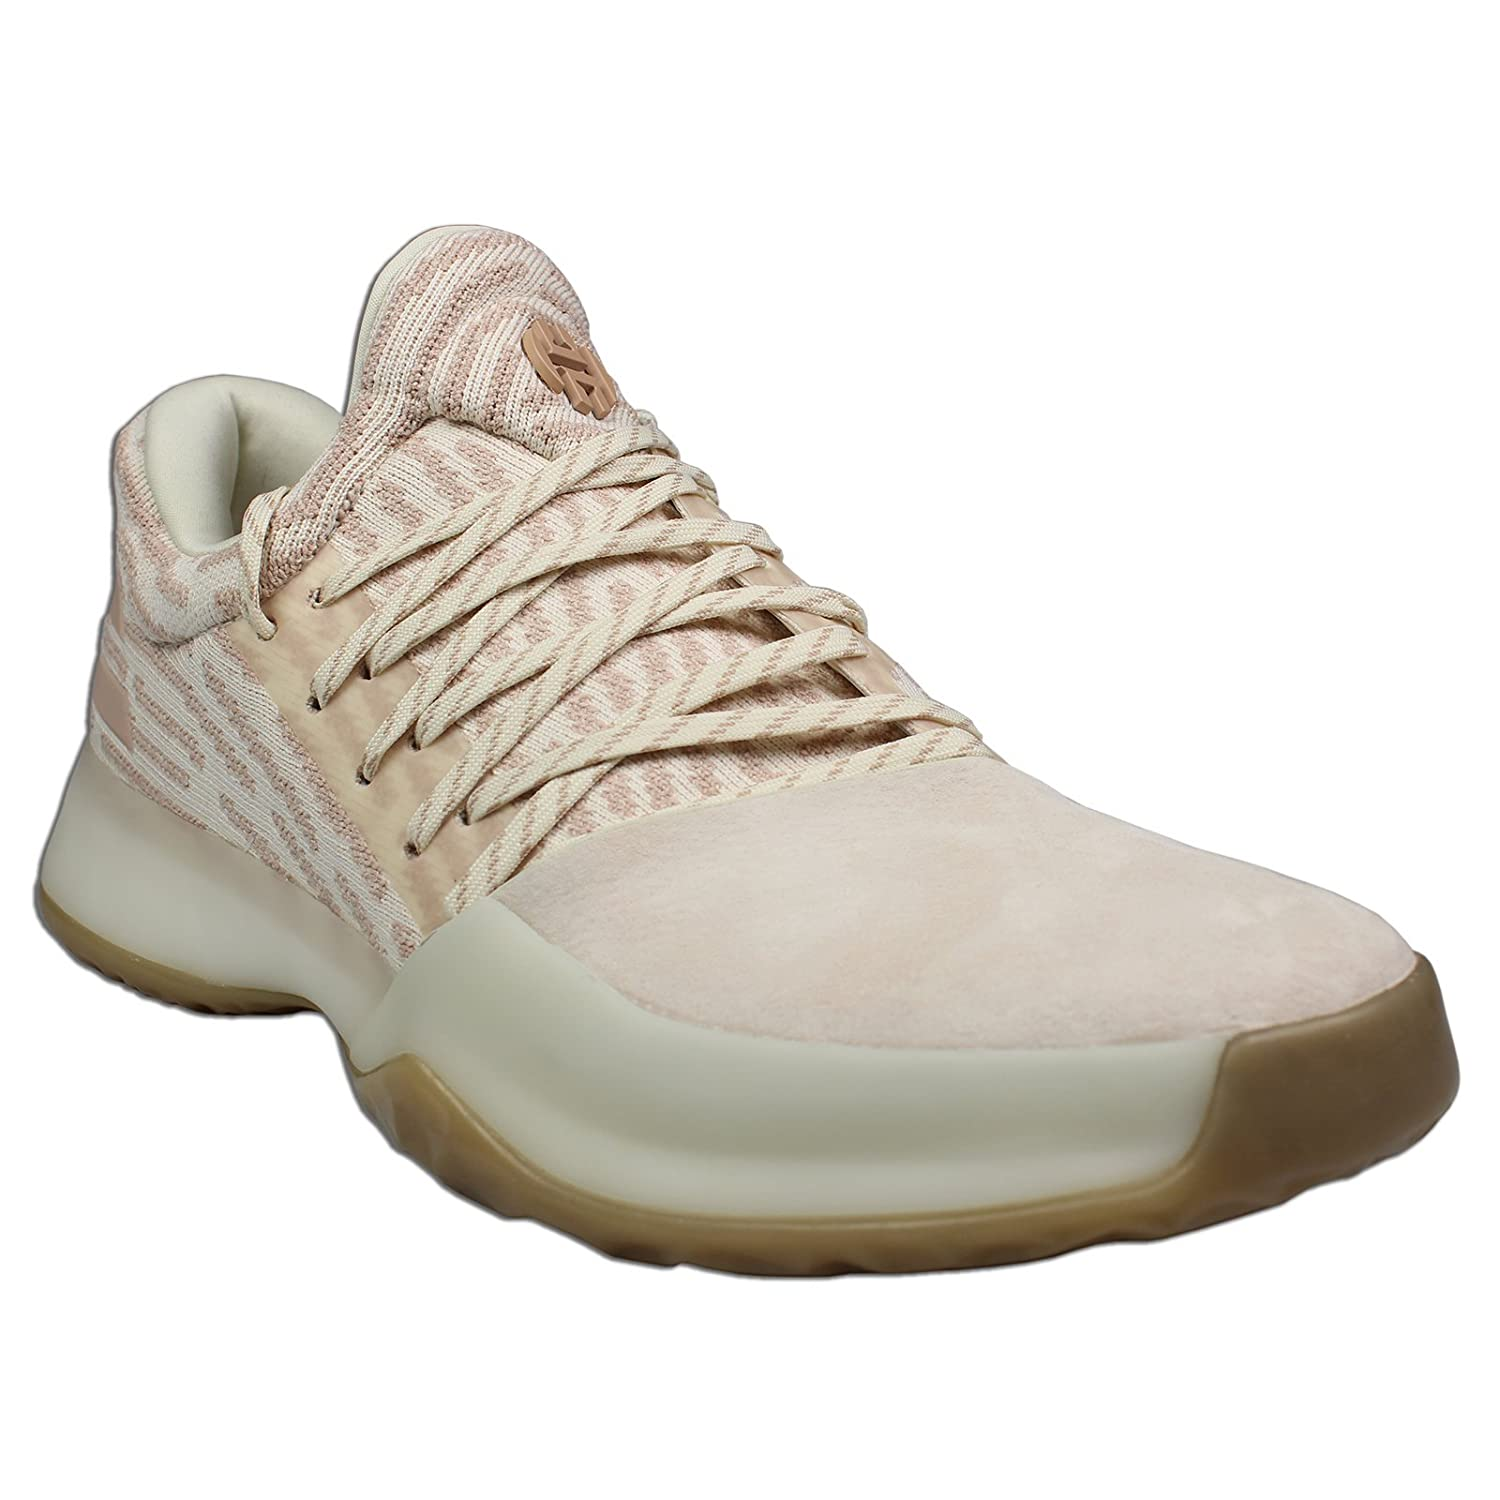 adidas Men\u0027s Harden Vol. 1 Basketball Shoe